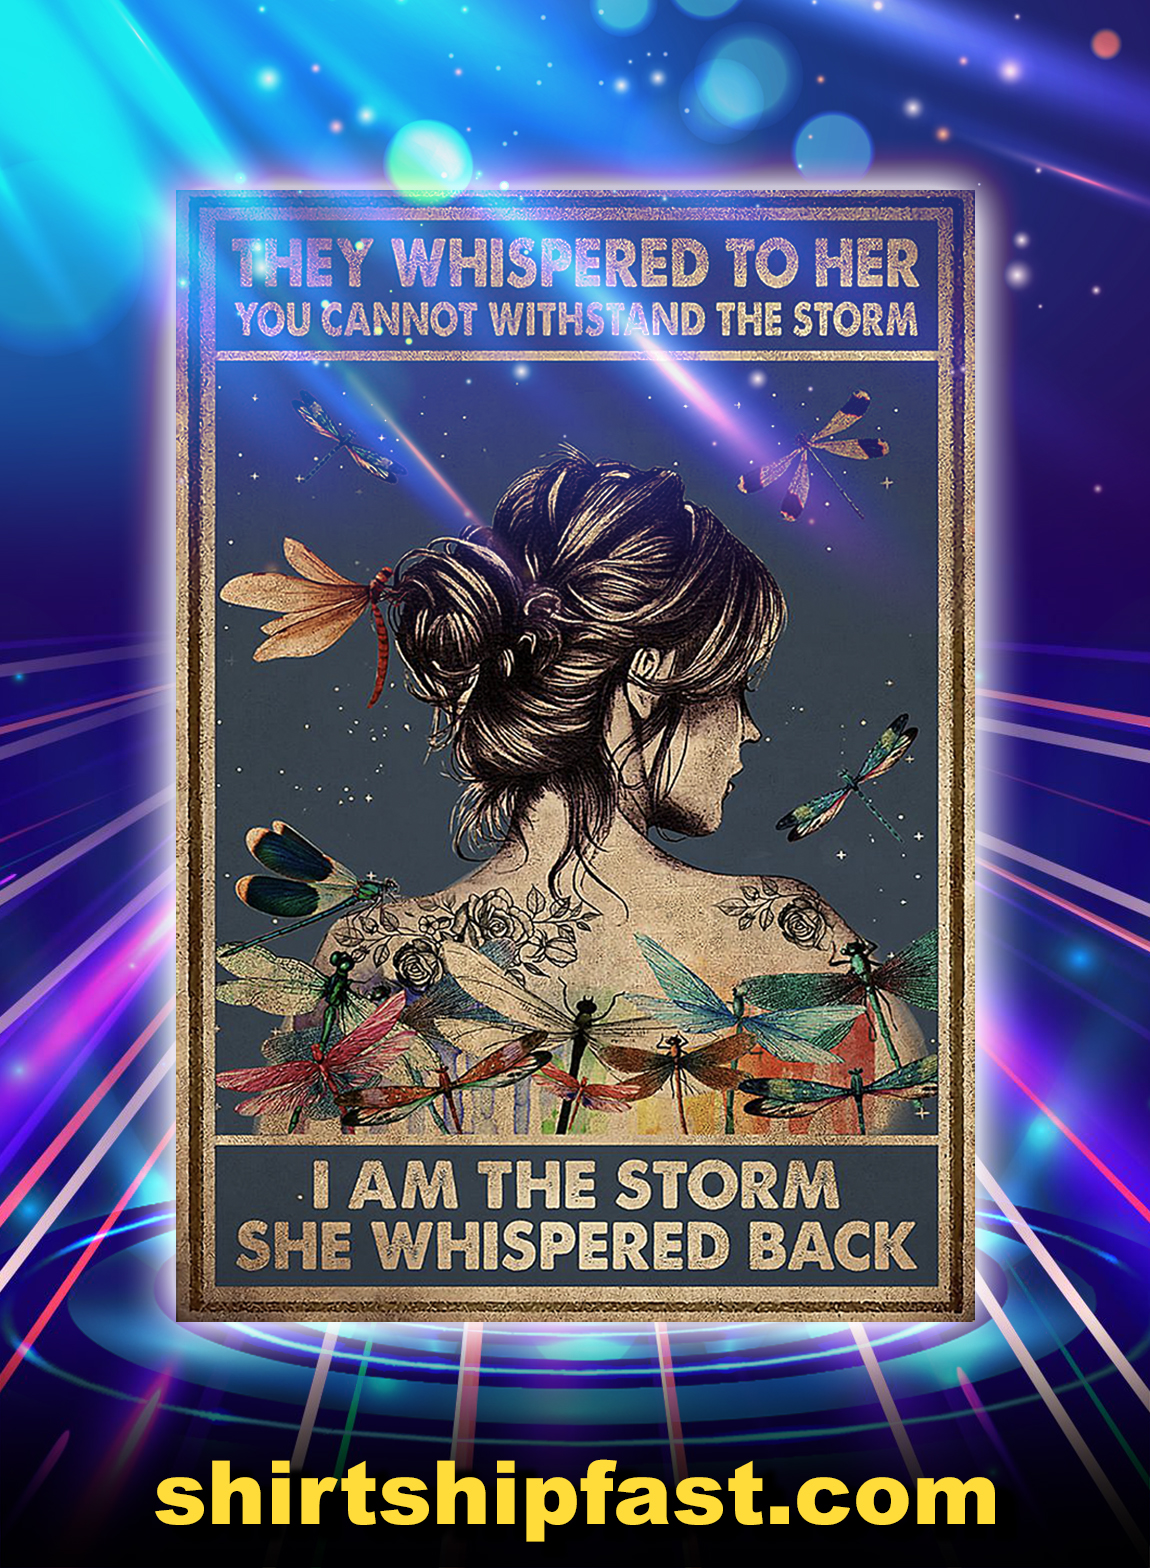 Hippie dragonfly they whispered to her you can not withstand the storm poster - A3